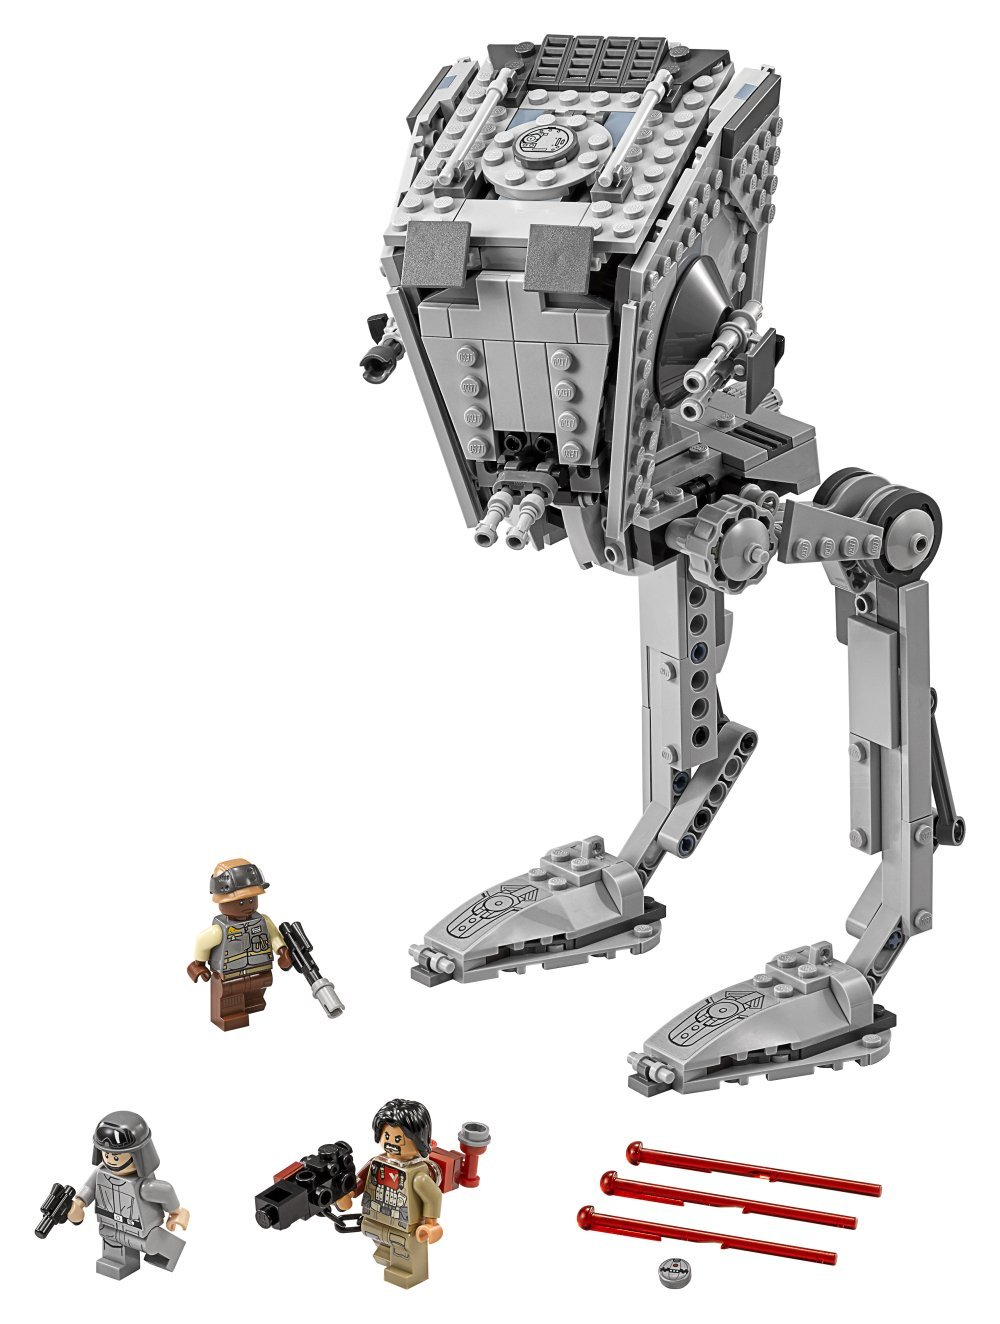 2016-lego-star-wars-at-st-walker-rogue-one-set_1.jpg